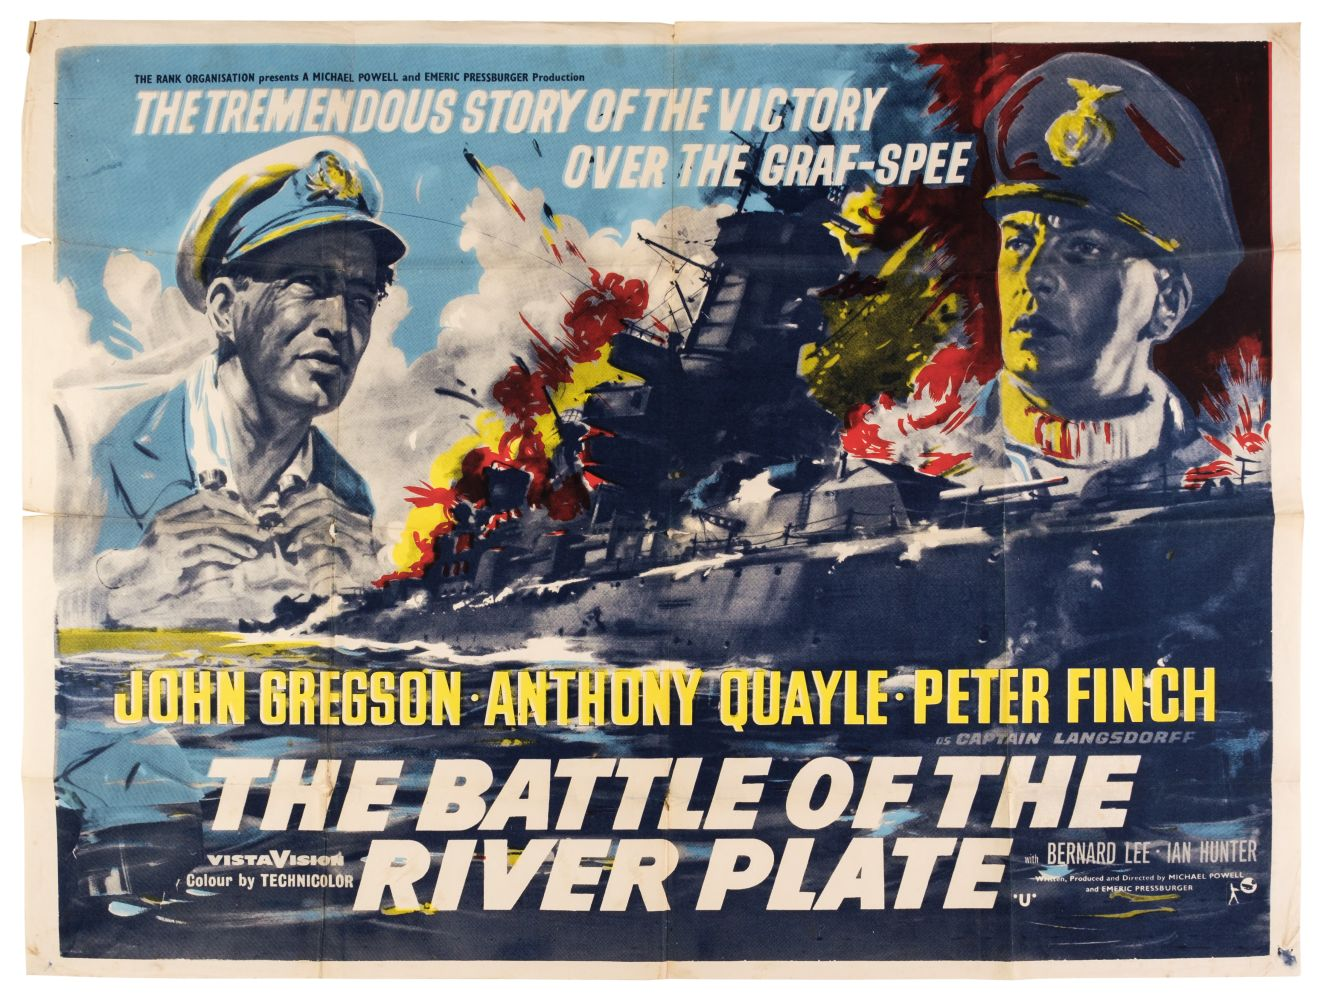 * The Battle of River Plate (1956). British Quad colour lithographic re-release film poster, c. 1960